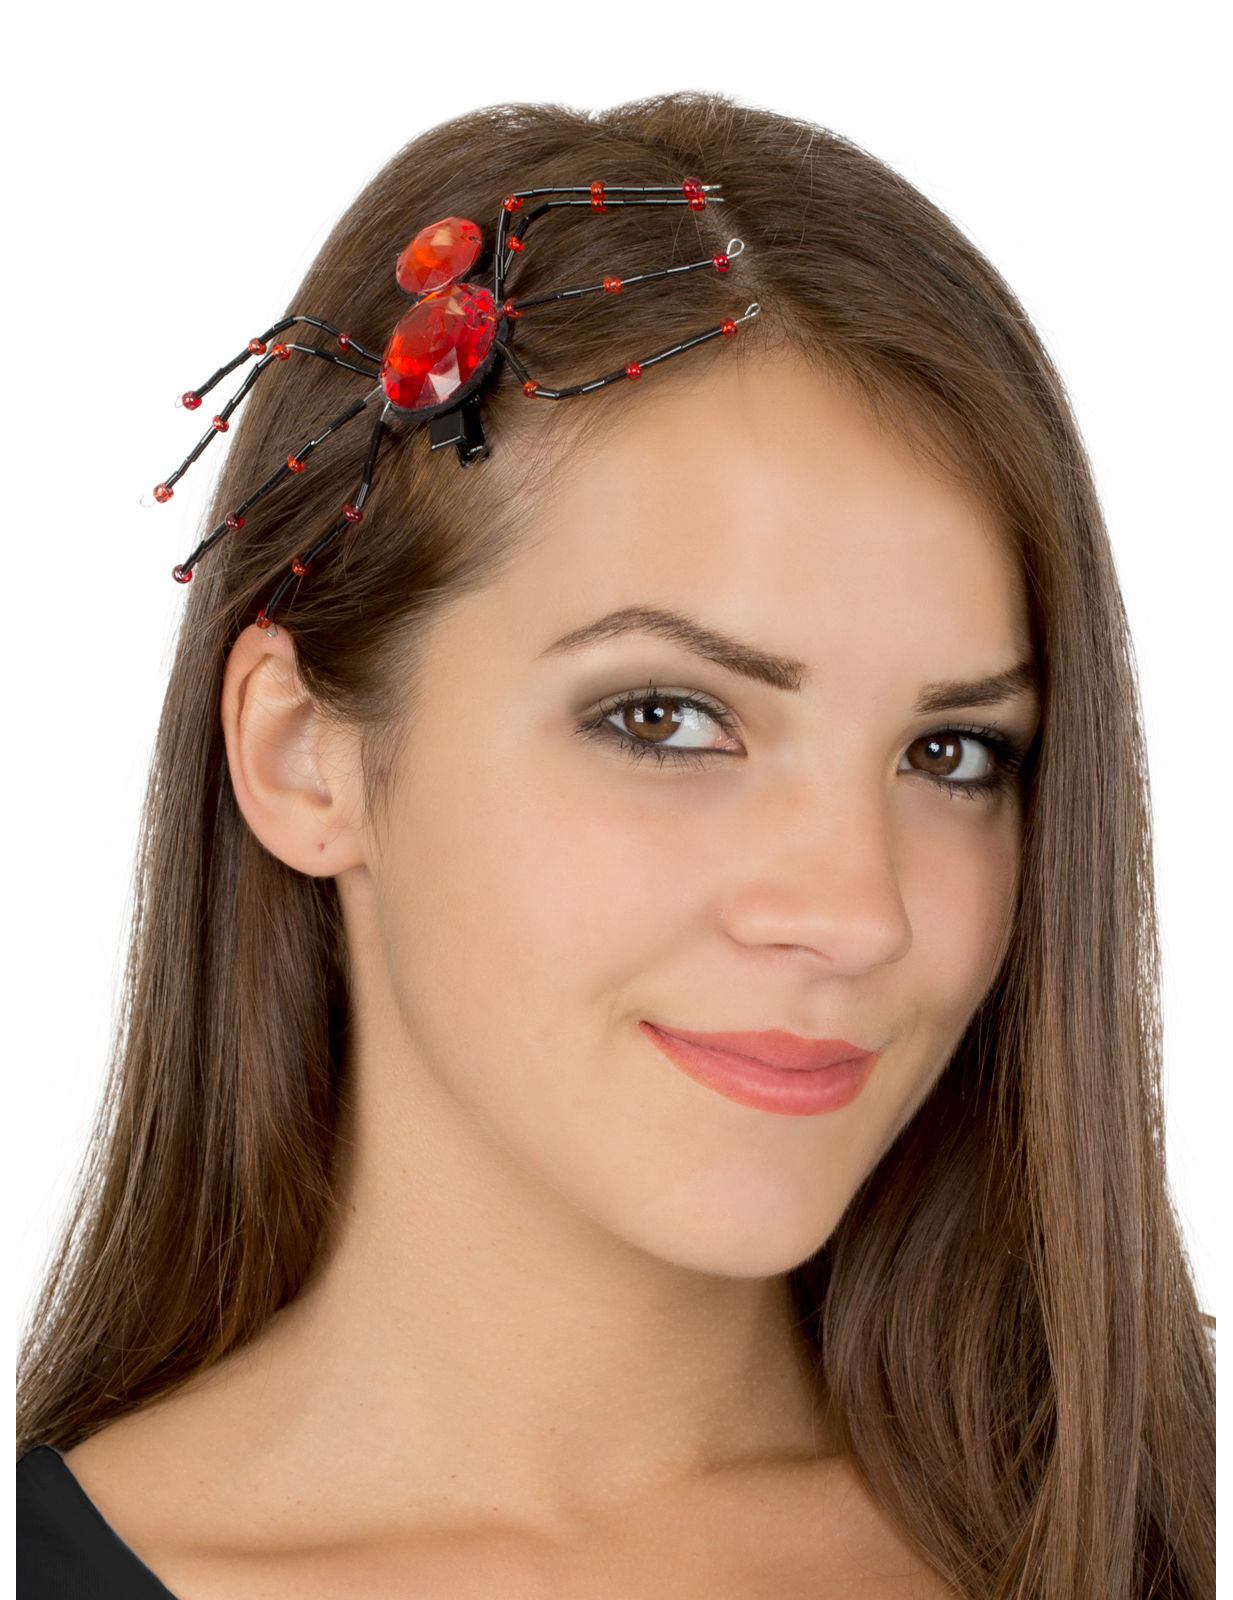 Edle spinnen haarspange schwarz rot accessoires und for Edle accessoires